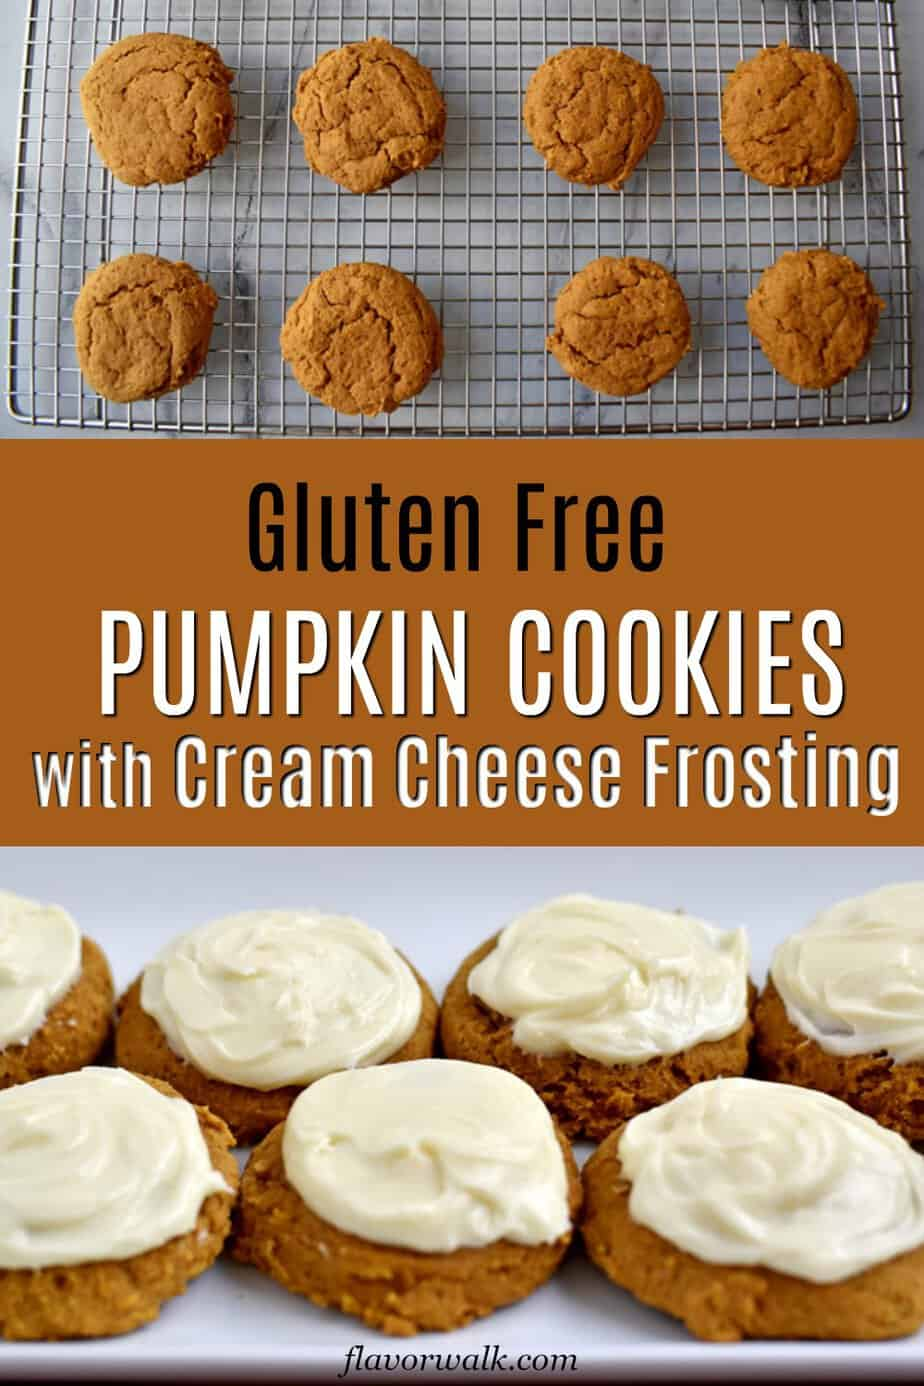 These Gluten Free Pumpkin Cookies, with cream cheese frosting, are a must-try for pumpkin fans! They're soft, sweet, perfectly spiced, and packed with pumpkin flavor. If you want to satisfy those pumpkin cravings, look no further than this flavorful cookie recipe! #glutenfreerecipes #pumpkincookies #glutenfreecookies